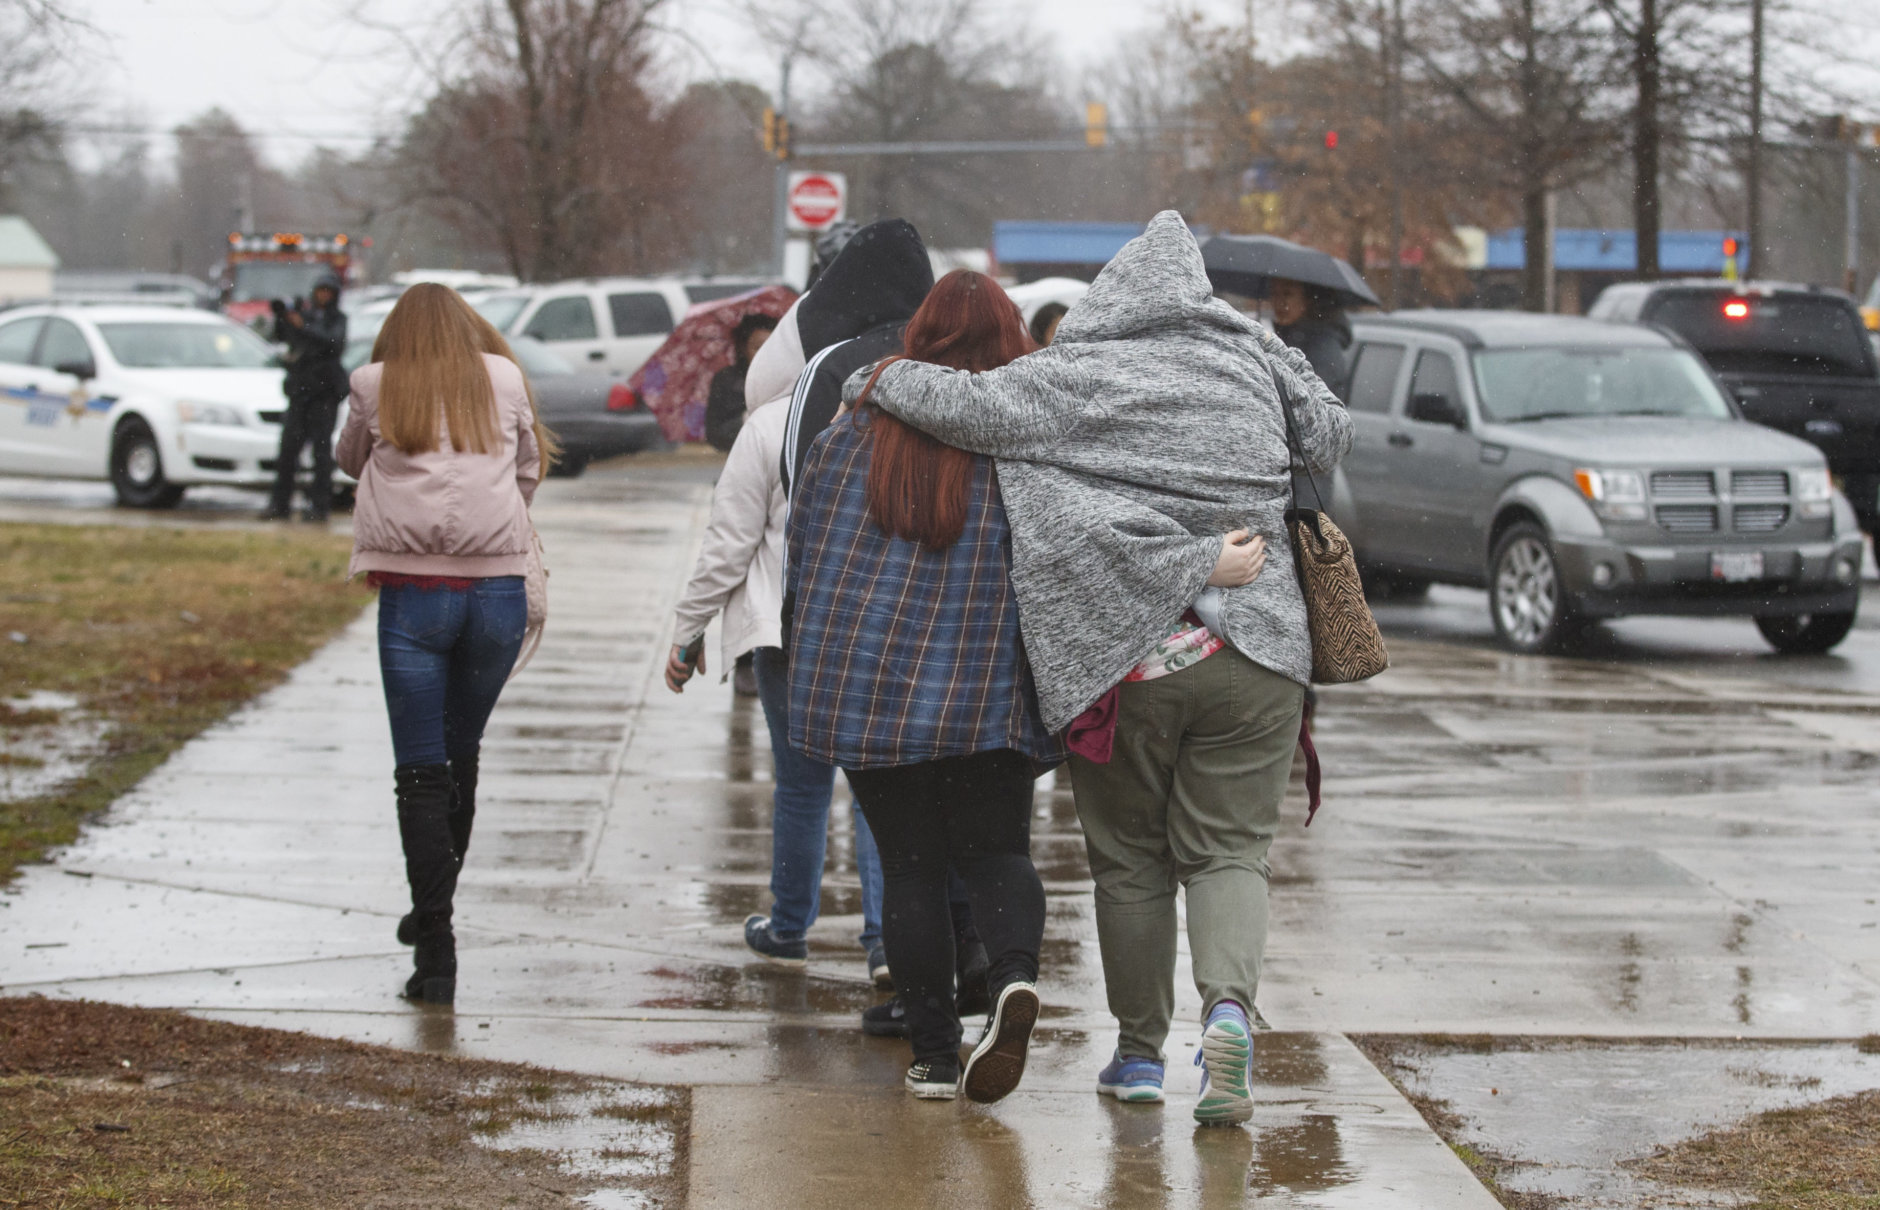 Parents walks their children, students from Great Mills High School, after picking them up from Leonardtown High School in Leonardtown, Md., Tuesday, March 20, 2018.   A teenager wounded a girl and a boy inside his Maryland high school Tuesday before a school resource officer was able to intervene, and each of them fired one more round as the shooter was fatally wounded, a sheriff said. St. Mary's County Sheriff Tim Cameron said the student with the handgun was declared dead at a hospital, and the other two students were in critical condition. (AP Photo/Carolyn Kaster)